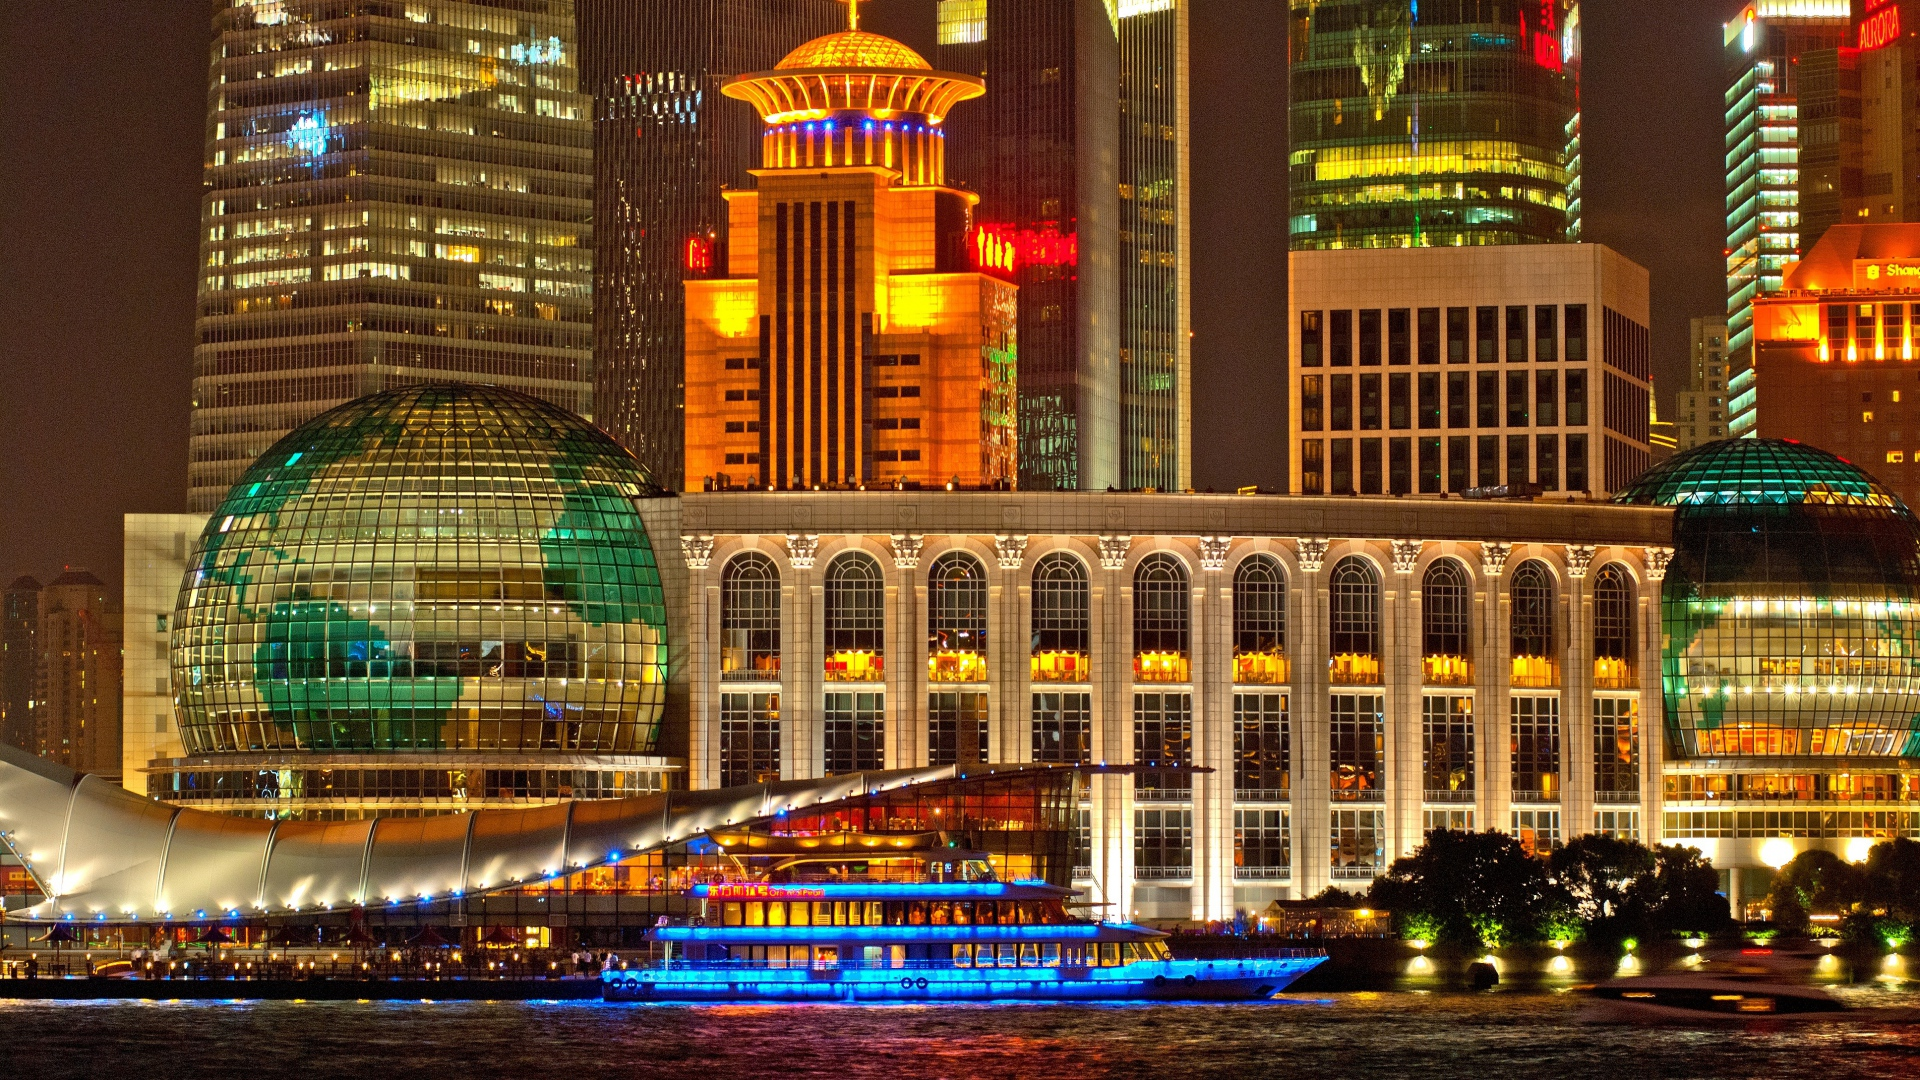 Shanghai Nights Lights Building Skyscrapers City Hd - Light Hd Images In Building , HD Wallpaper & Backgrounds